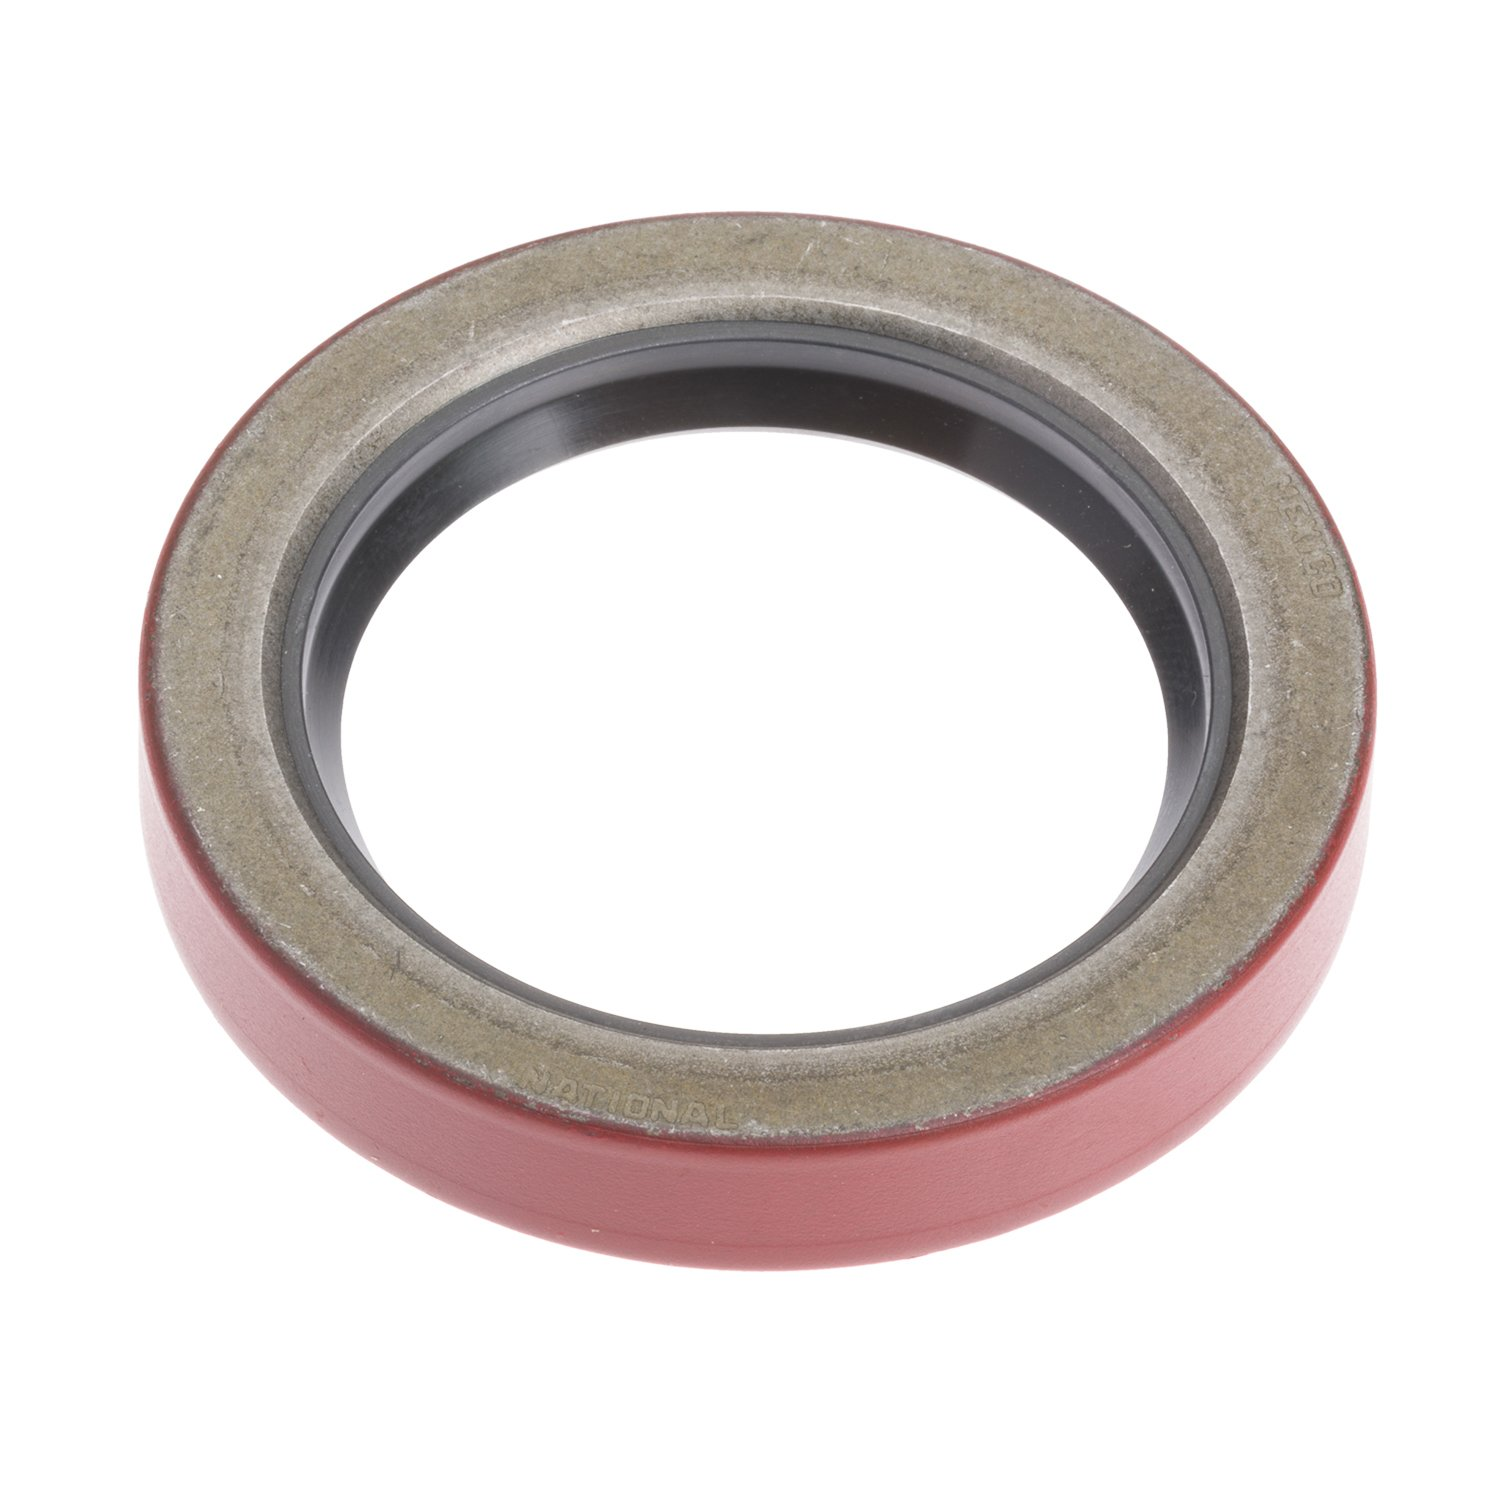 National 450308 Oil Seal 450308-NAT